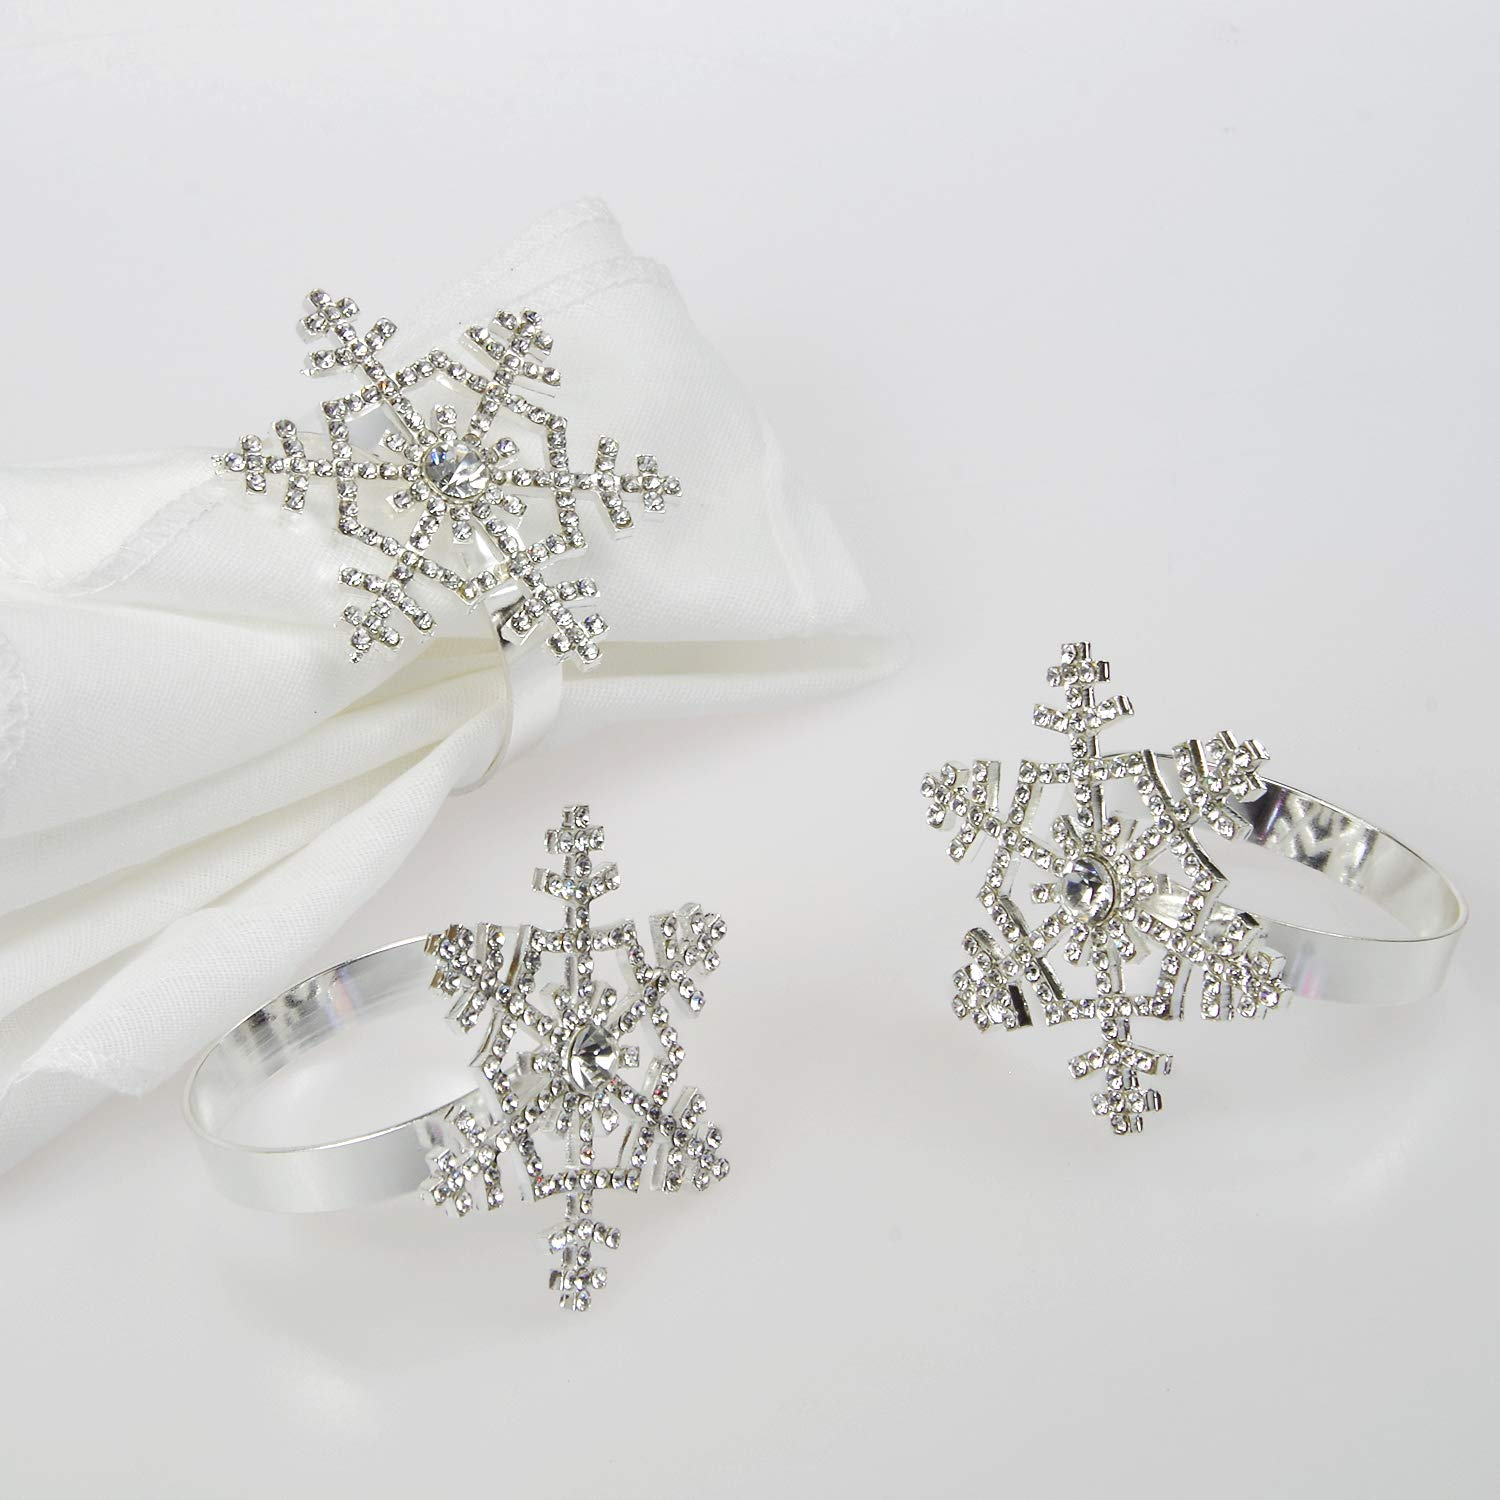 Poitemsic Silver Snowflake Napkin Rings with Diamond for Christmas Thanksgiving Table Decoration(Set of 6)